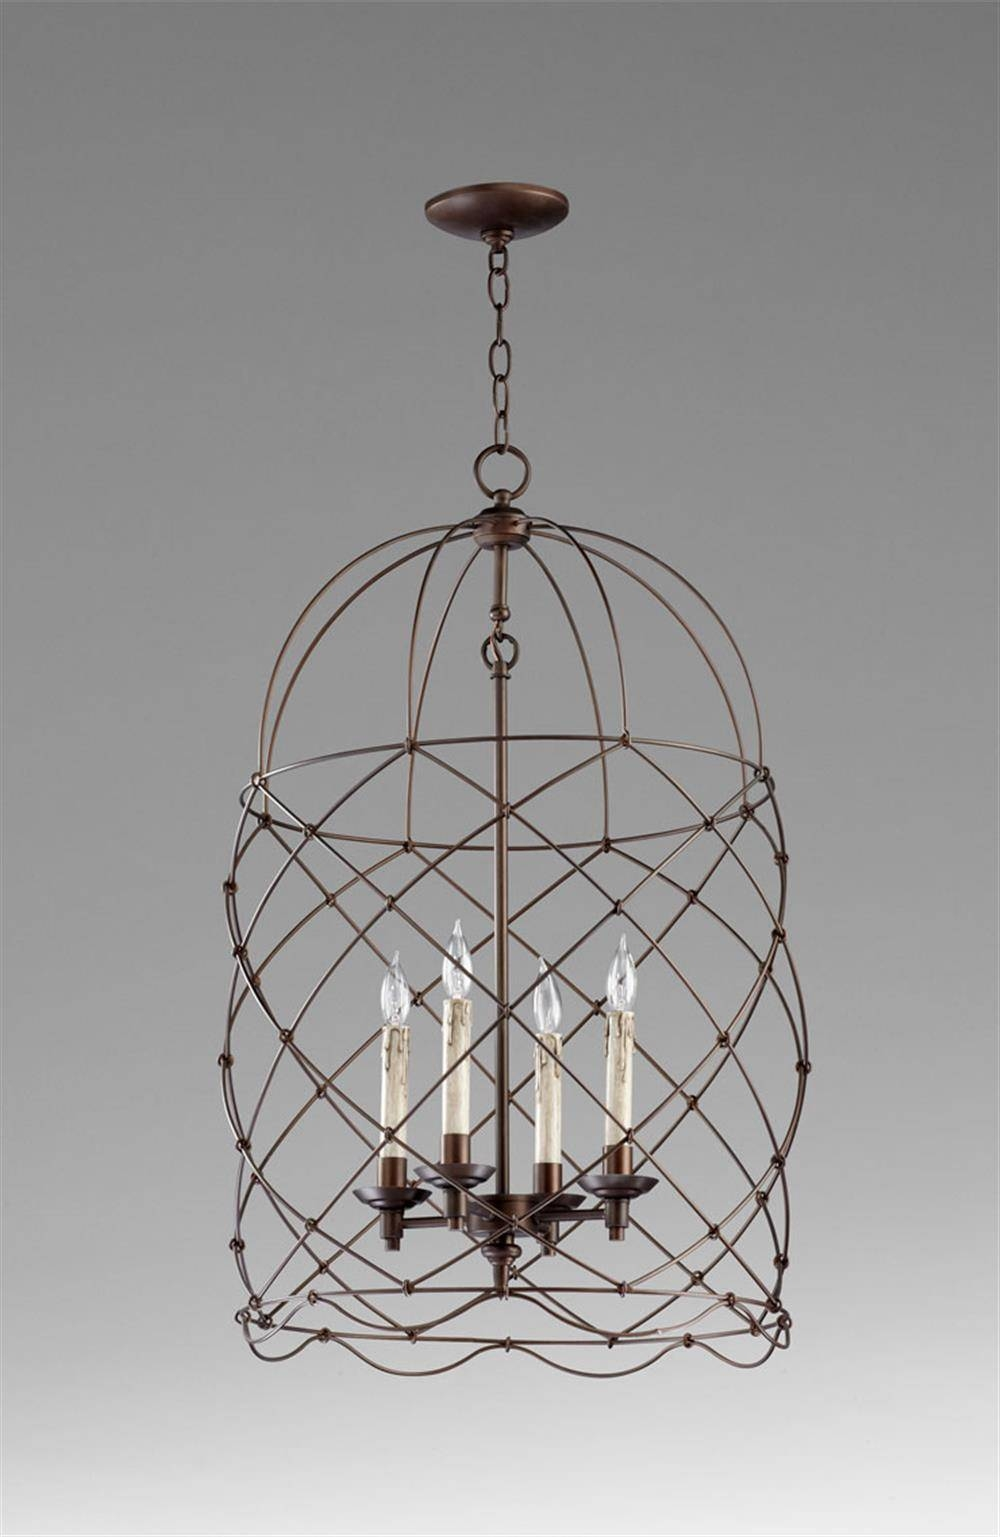 Adele Oil Rubbed Bronze Four Light Bird Cage Chandelier | Kathy for Birdcage Lights Fixtures (Image 2 of 15)